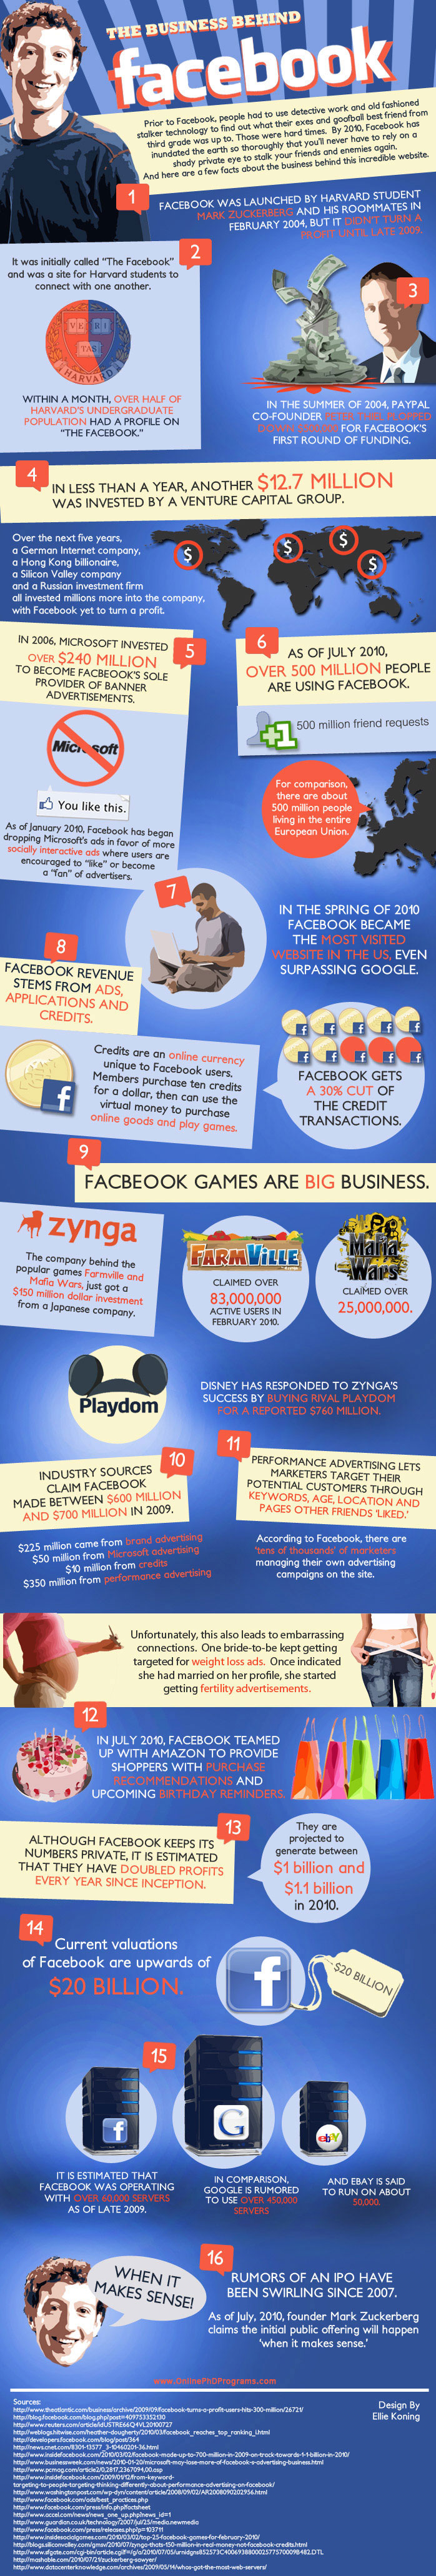 business of facebook infographic